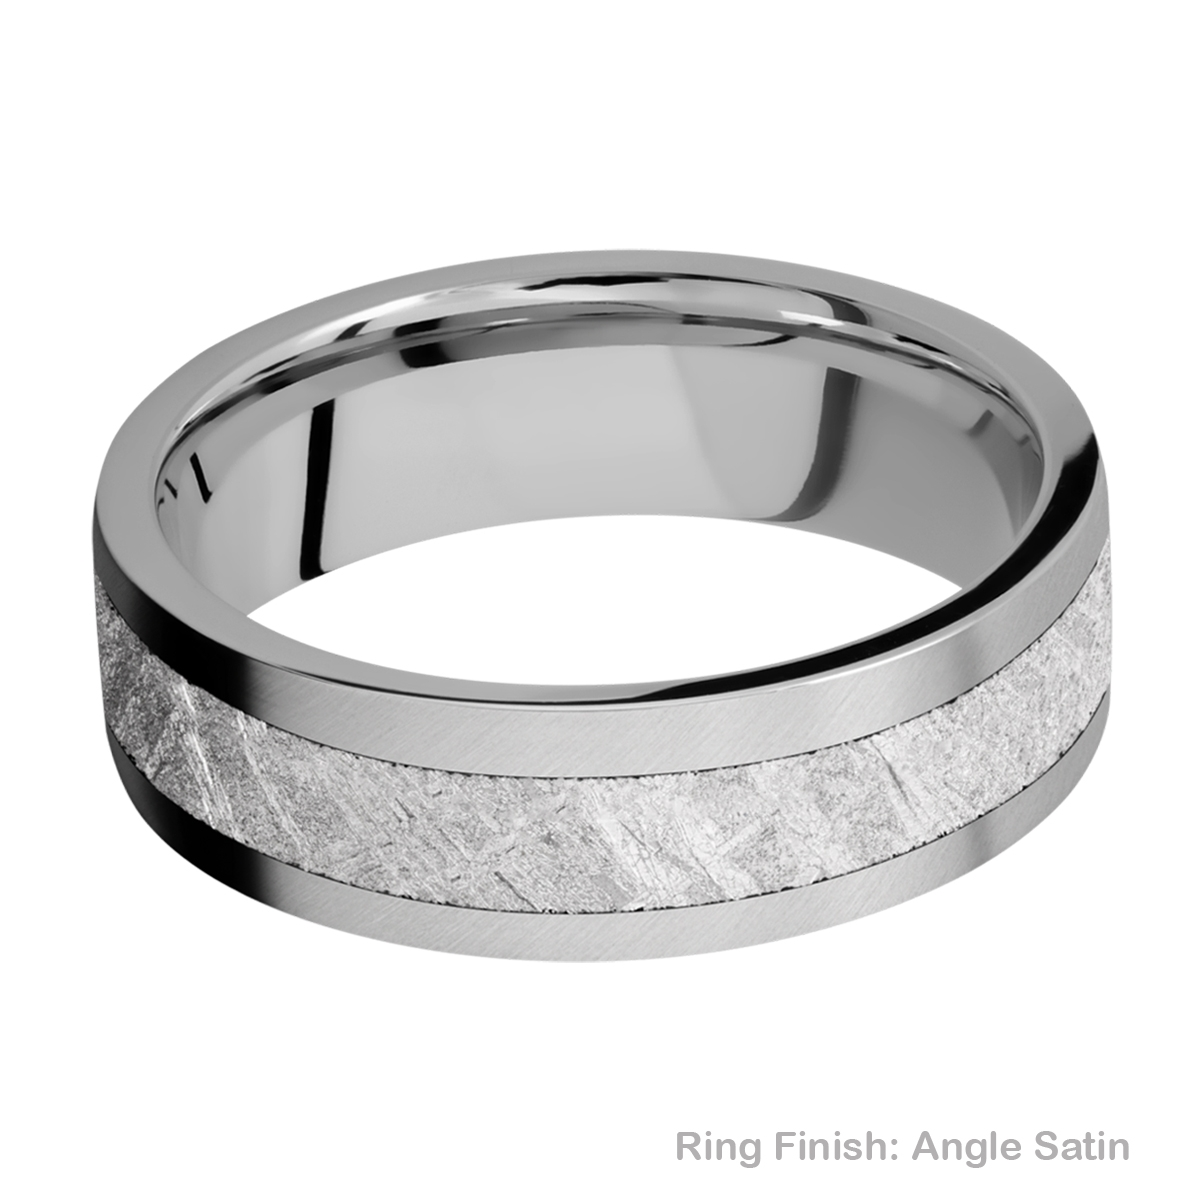 Lashbrook 7F14/METEORITE Titanium Wedding Ring or Band Alternative View 7